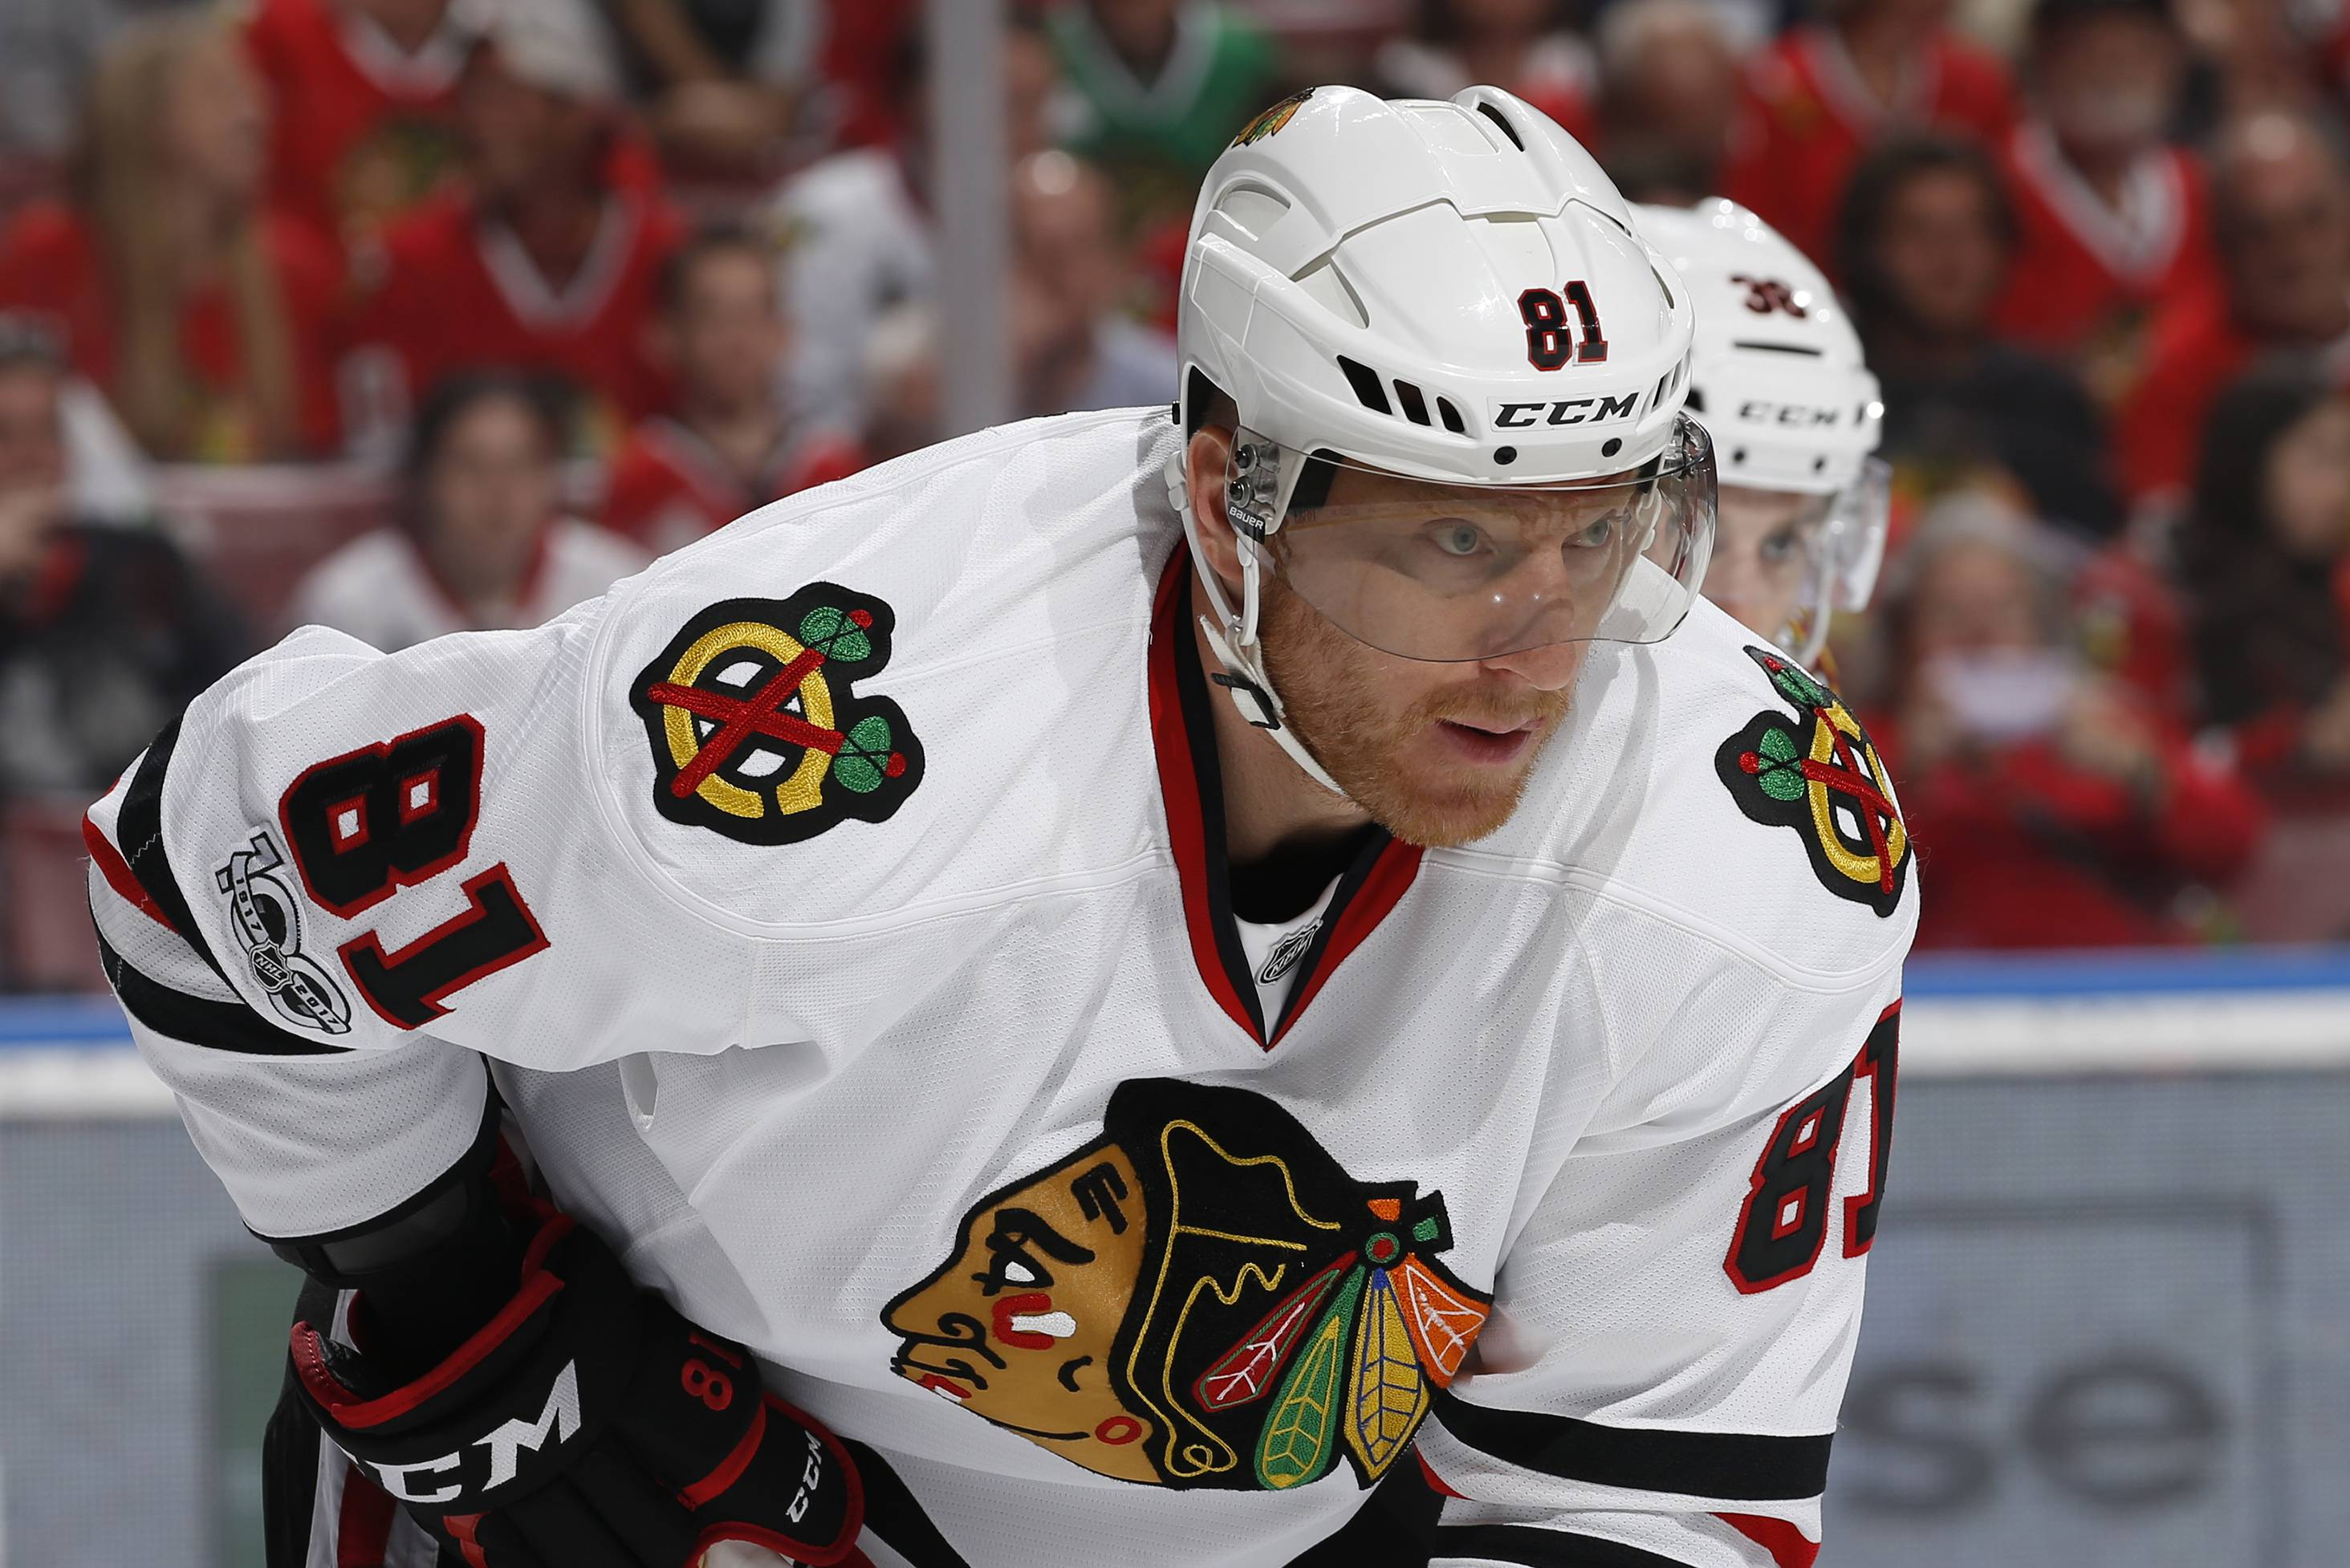 FILE - In this Saturday, March 25, 2017, file photo, Chicago Blackhawks right wing Marian Hossa (81) prepares for a face off against the Florida Panthers during the first period of an NHL hockey game, in Sunrise, Fla. Hossa will miss the entire 2017-18 NHL season because of a progressive skin disorder, the team announced the news early Wednesday, June 21, 2017. (AP Photo/Joel Auerbach, File)